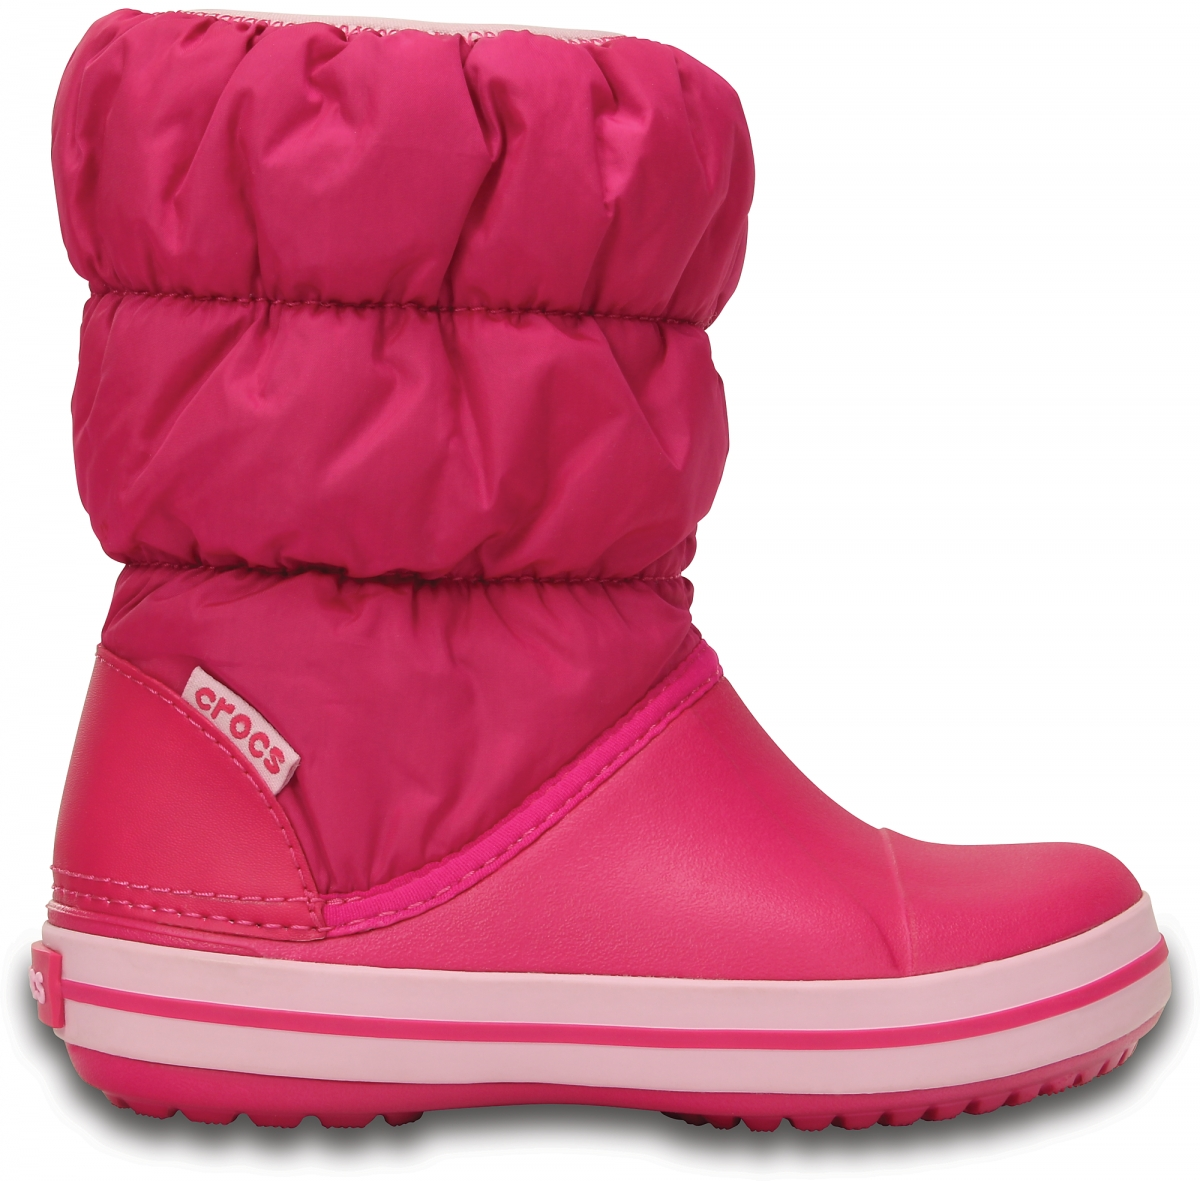 Crocs Winter Puff Boot Kids - Candy Pink, C9 (25-26)